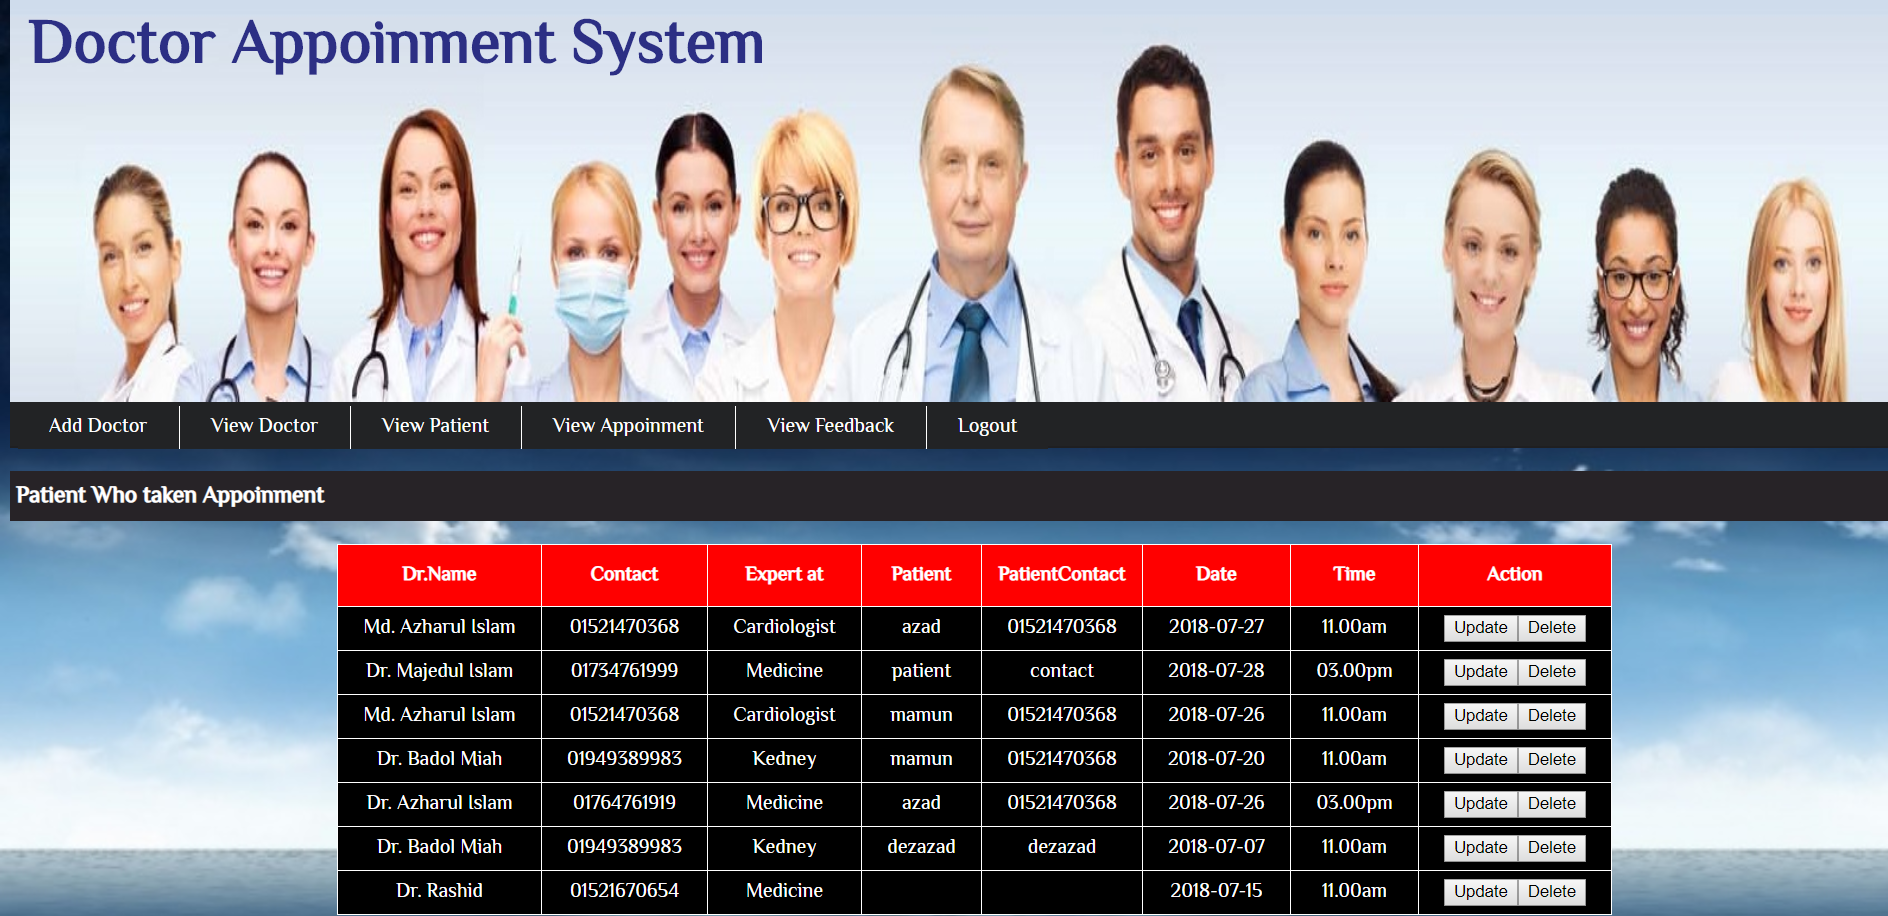 image of Doctor Appointment System